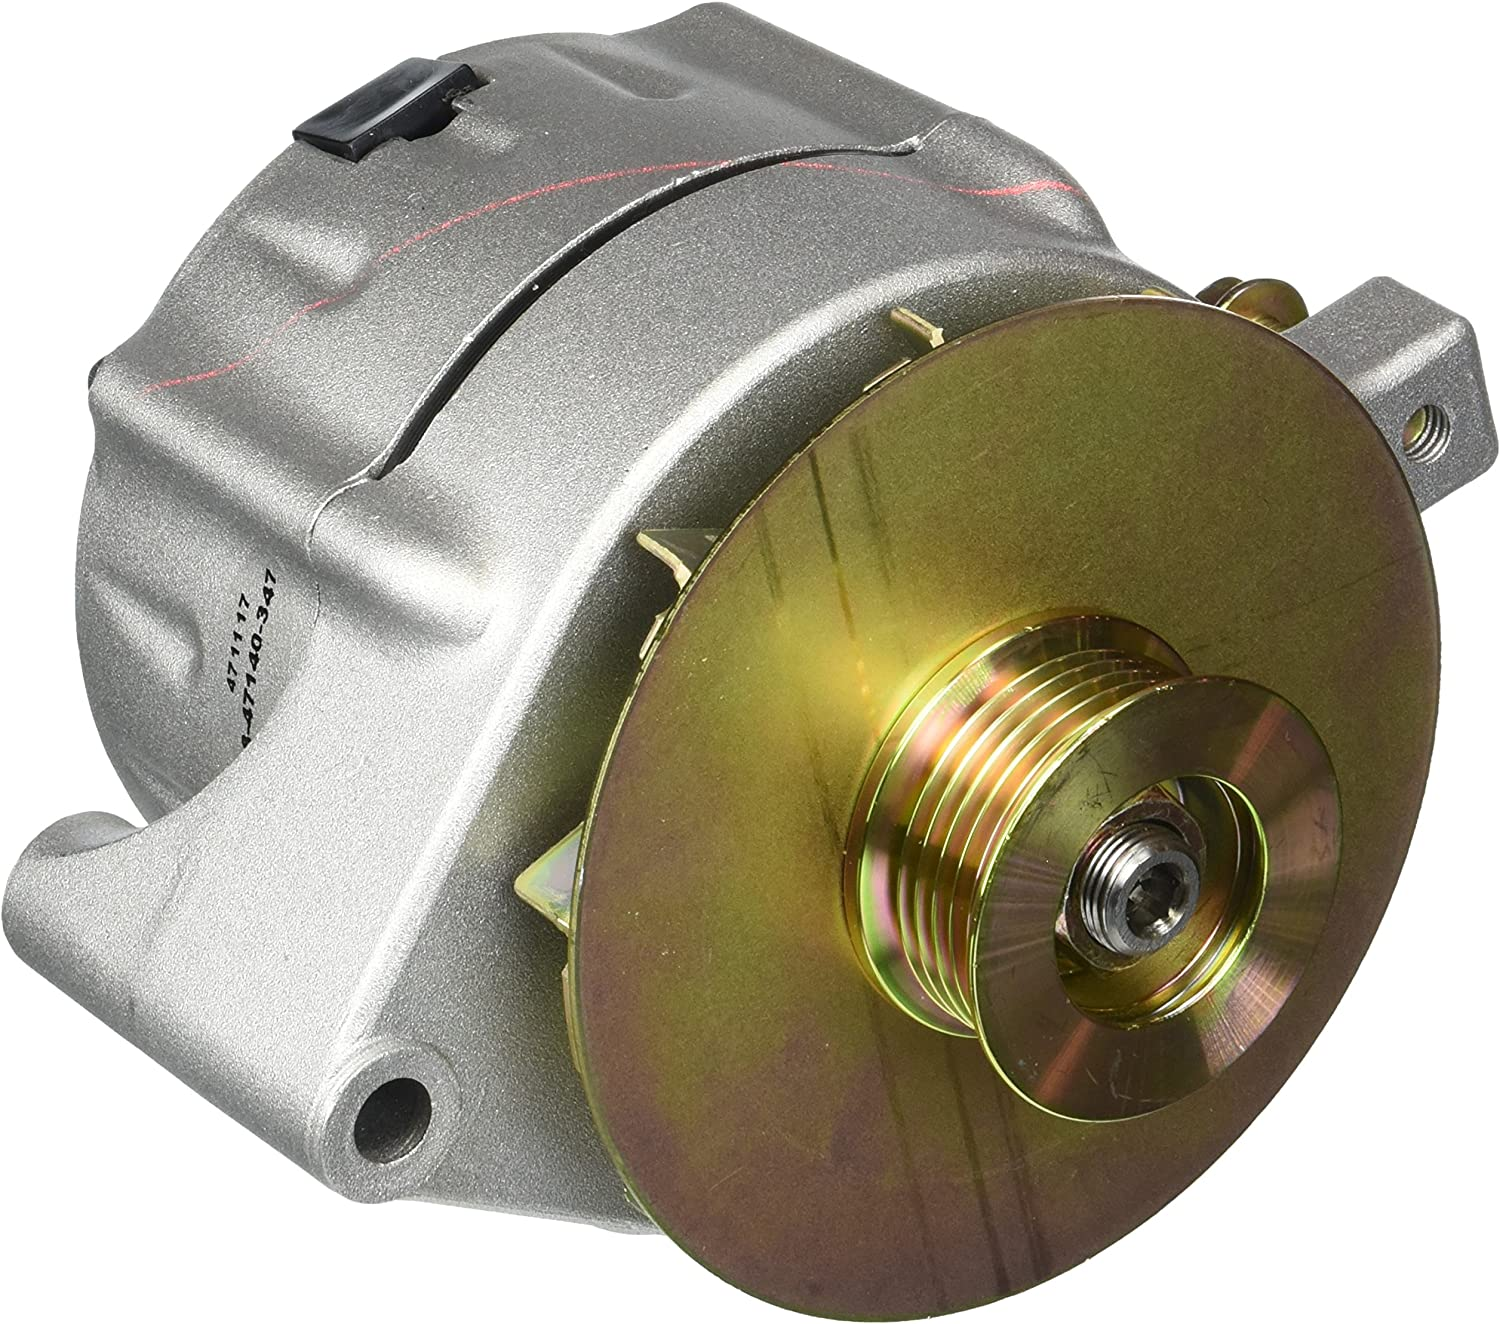 Powermaster Performance 8-47140-347 Natural Alternator Upgrade 150A Smooth Look 6 Groove Pulley /& Baffle /& Cone 1 Wire